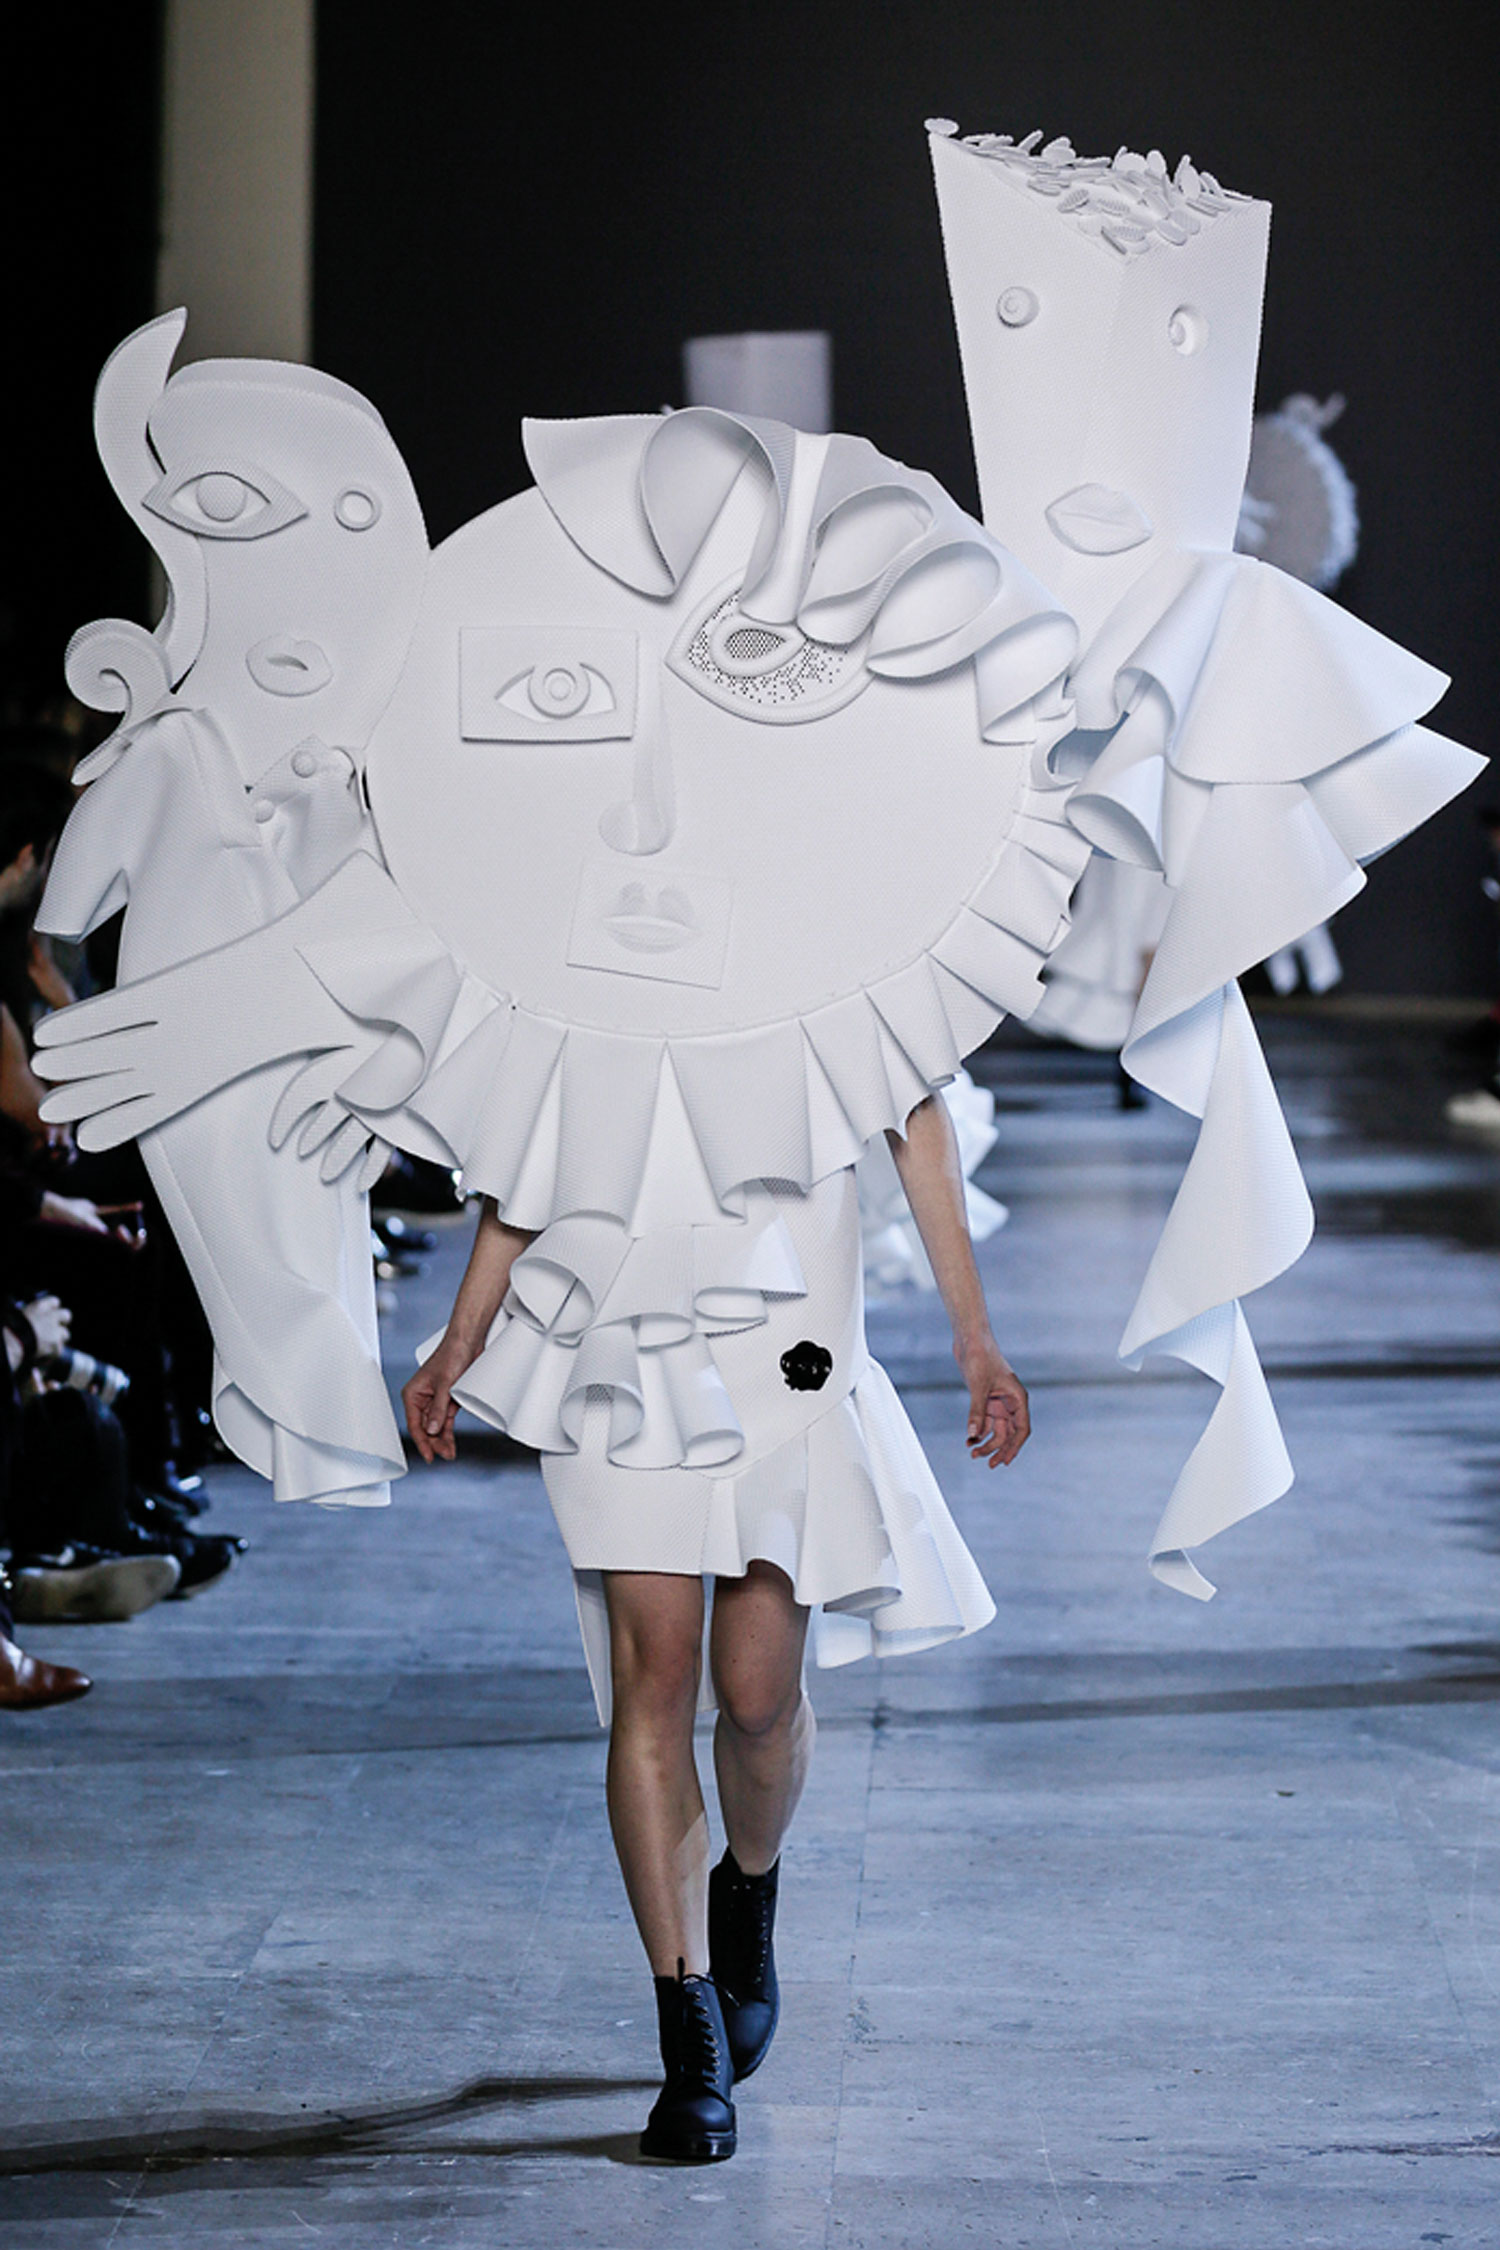 Viktor&Rolf Performance of Sculptures haute couture collection, spring–summer 2016 photo © Team Peter Stigter